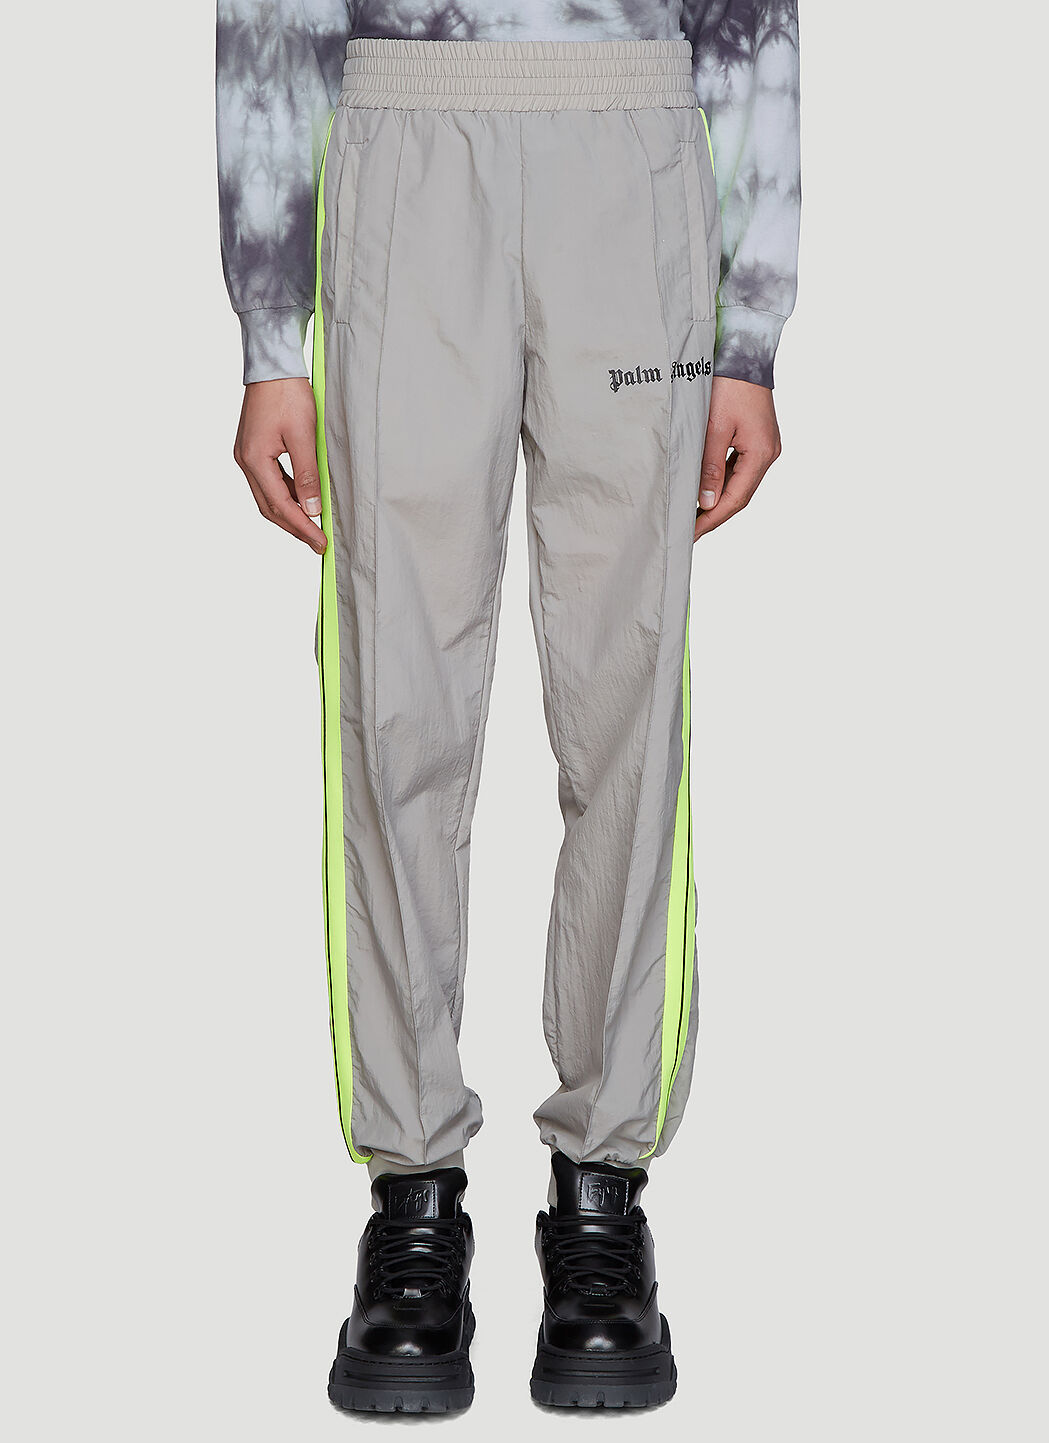 Palm Angels Pants Loose-Fit Nylon Track Pants in Grey